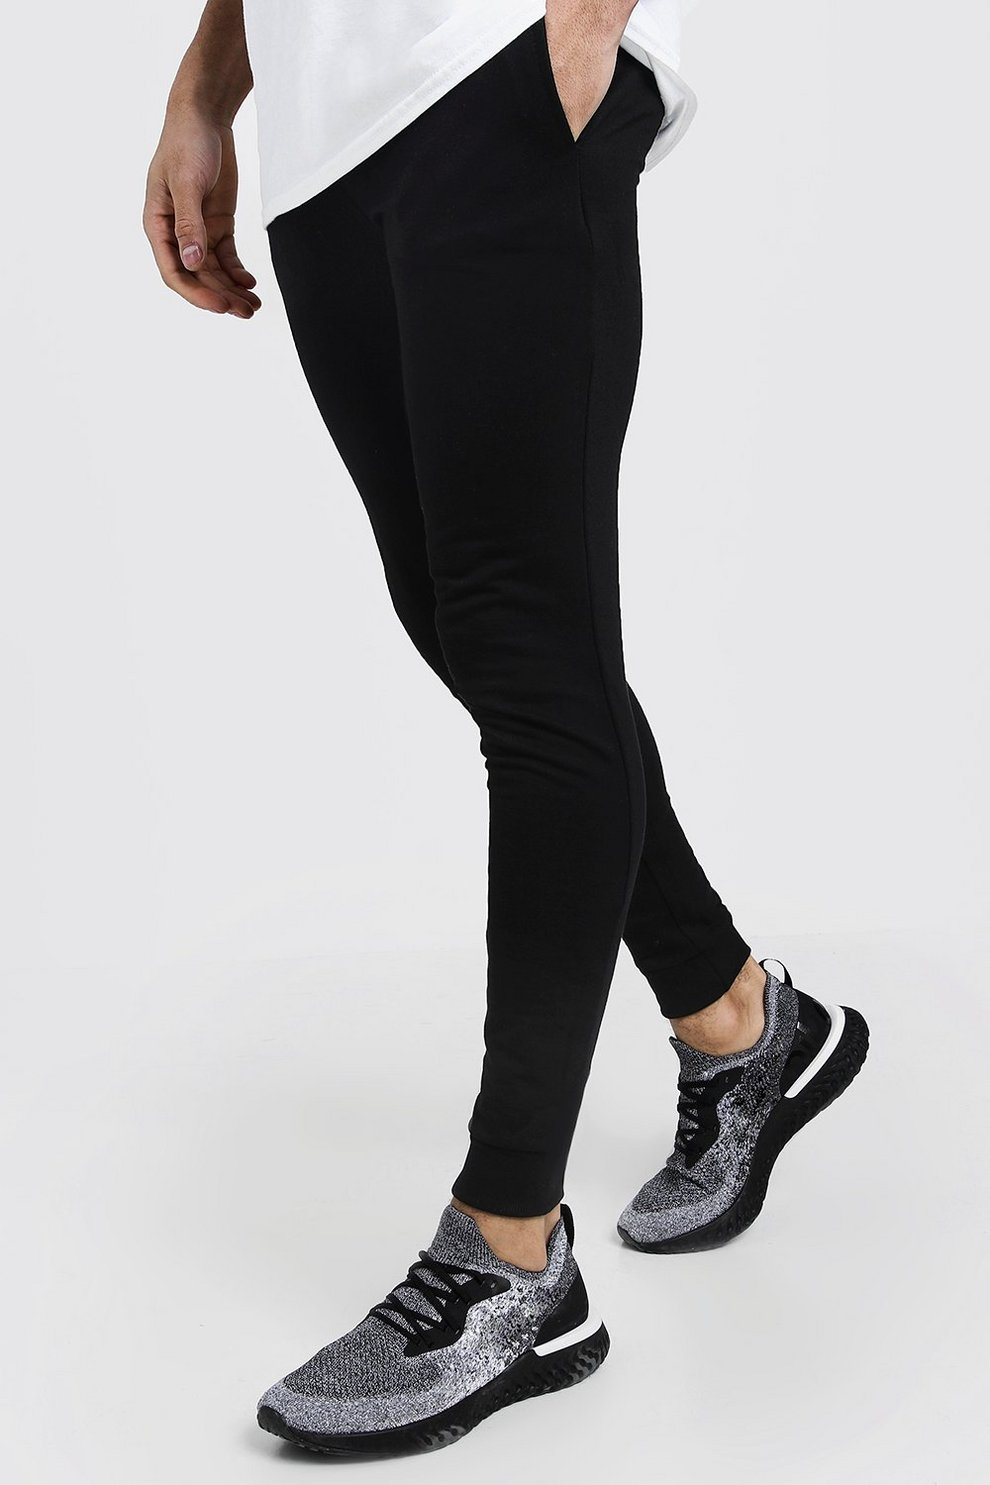 ad6963f8540c71 Mens Black Super Skinny Joggers. Hover to zoom